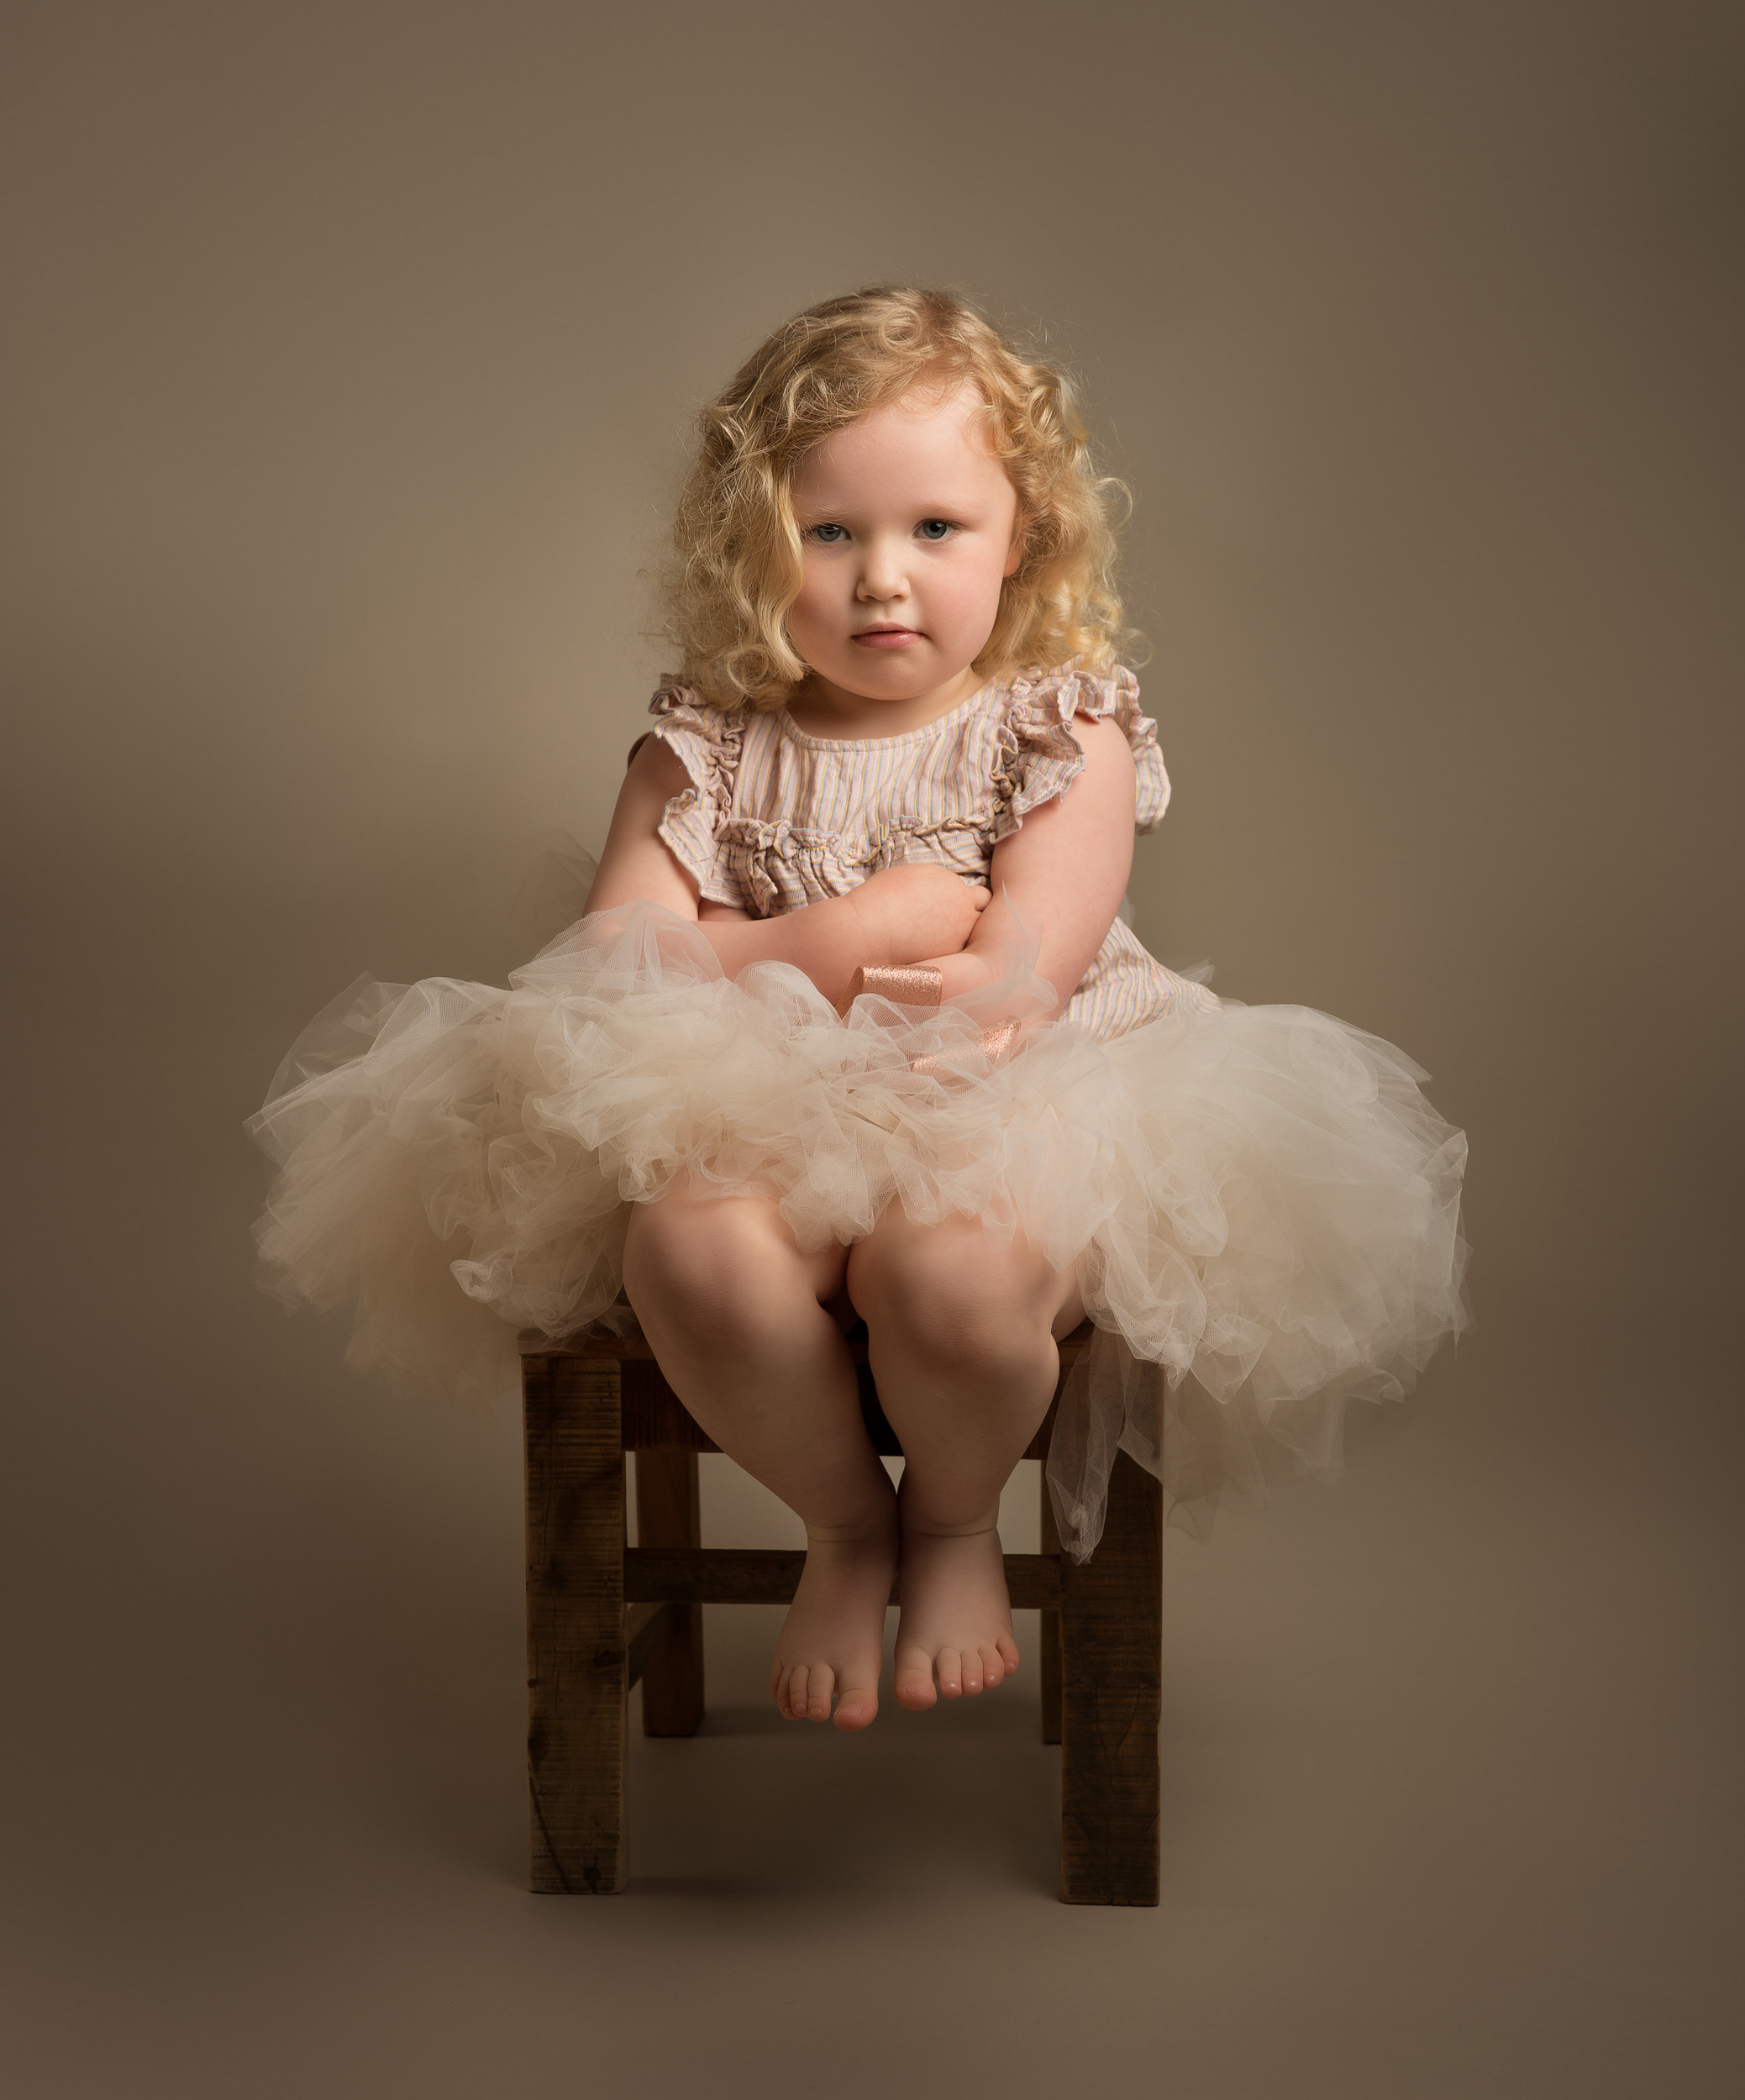 Grumpy little balerina shot of a little girl from her Family Portrait photo shoot in Cheshire